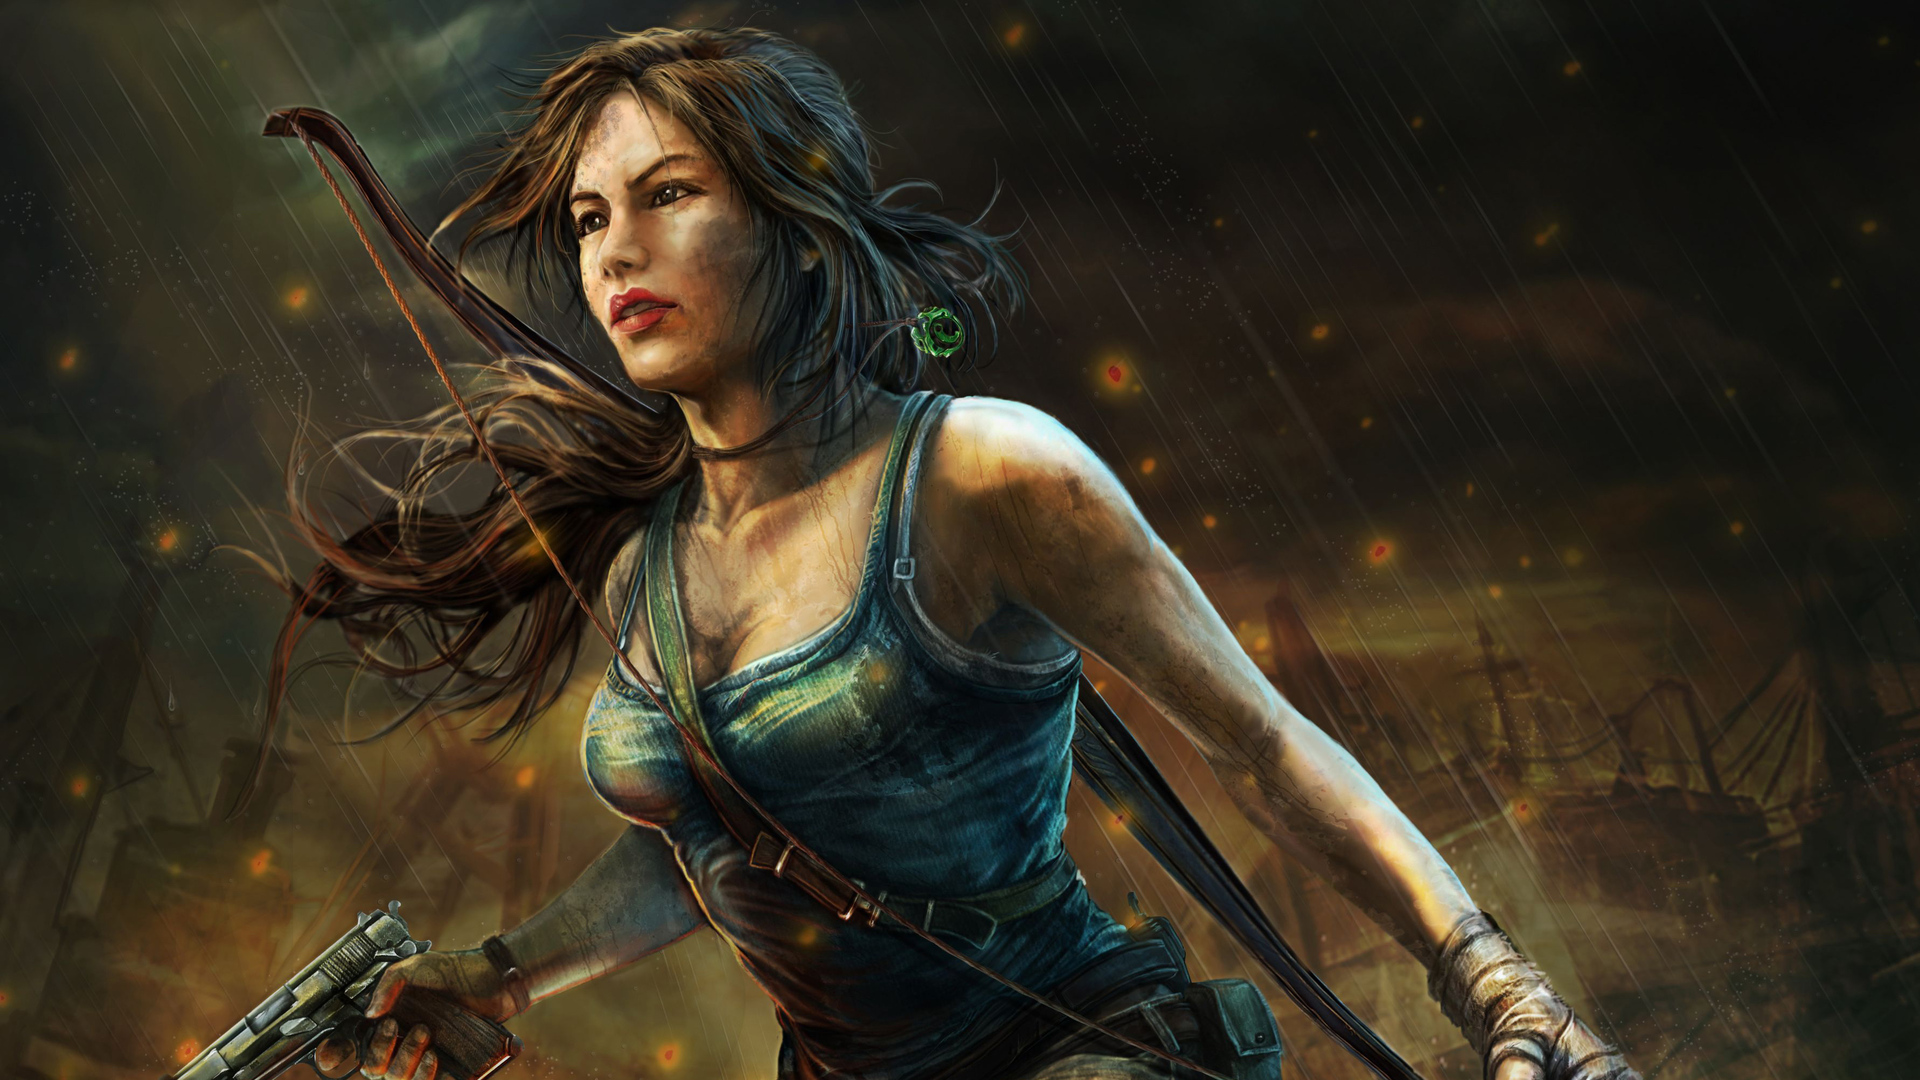 1920x1080 Tomb Raider 4k Art Laptop Full Hd 1080p Hd 4k Wallpapers